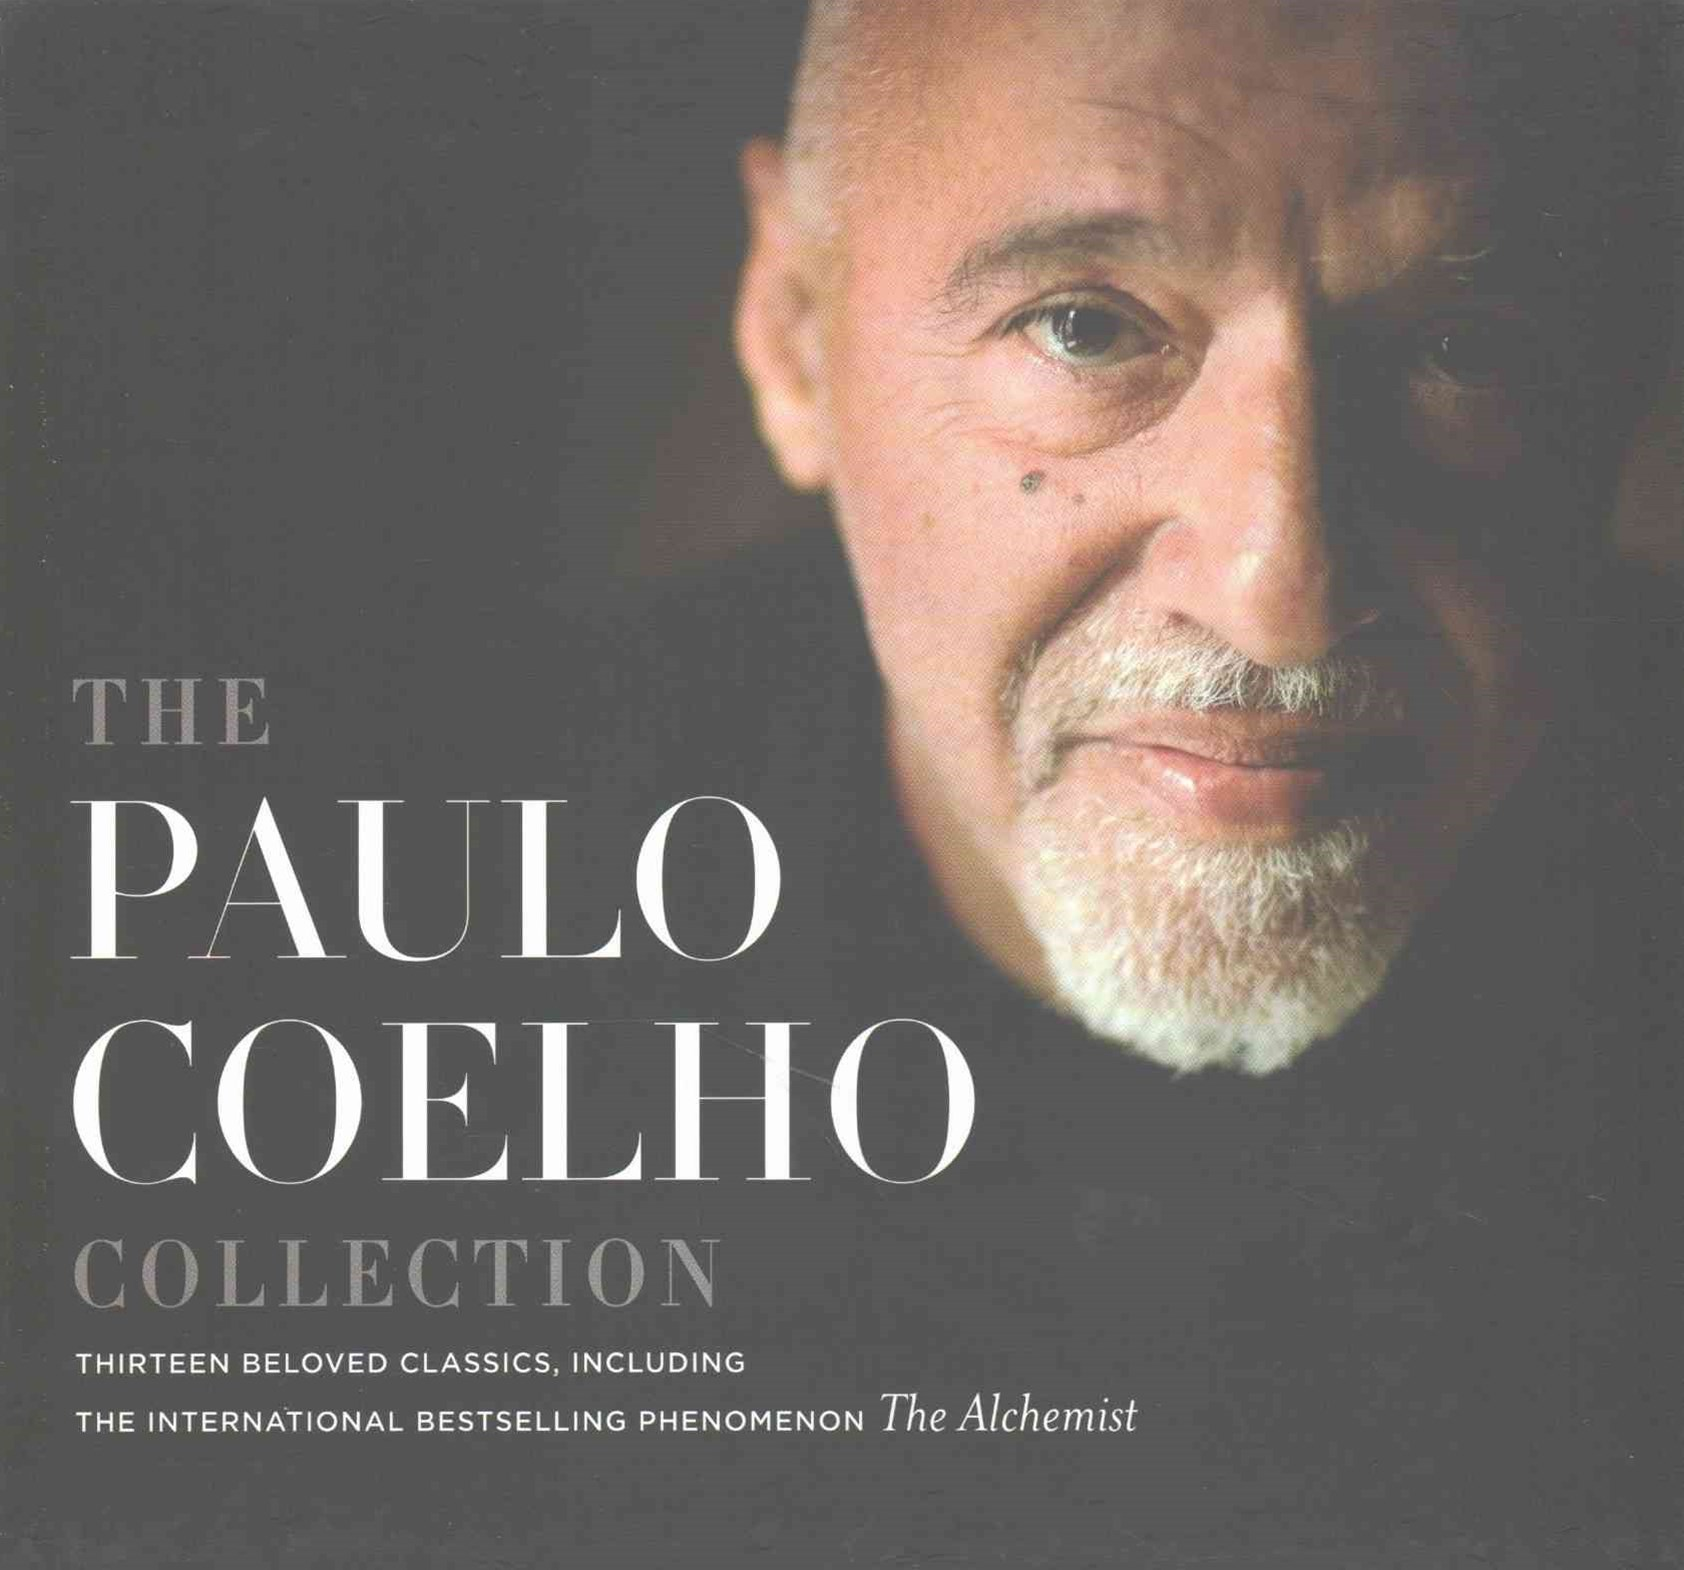 The Paulo Coelho Complete Collection